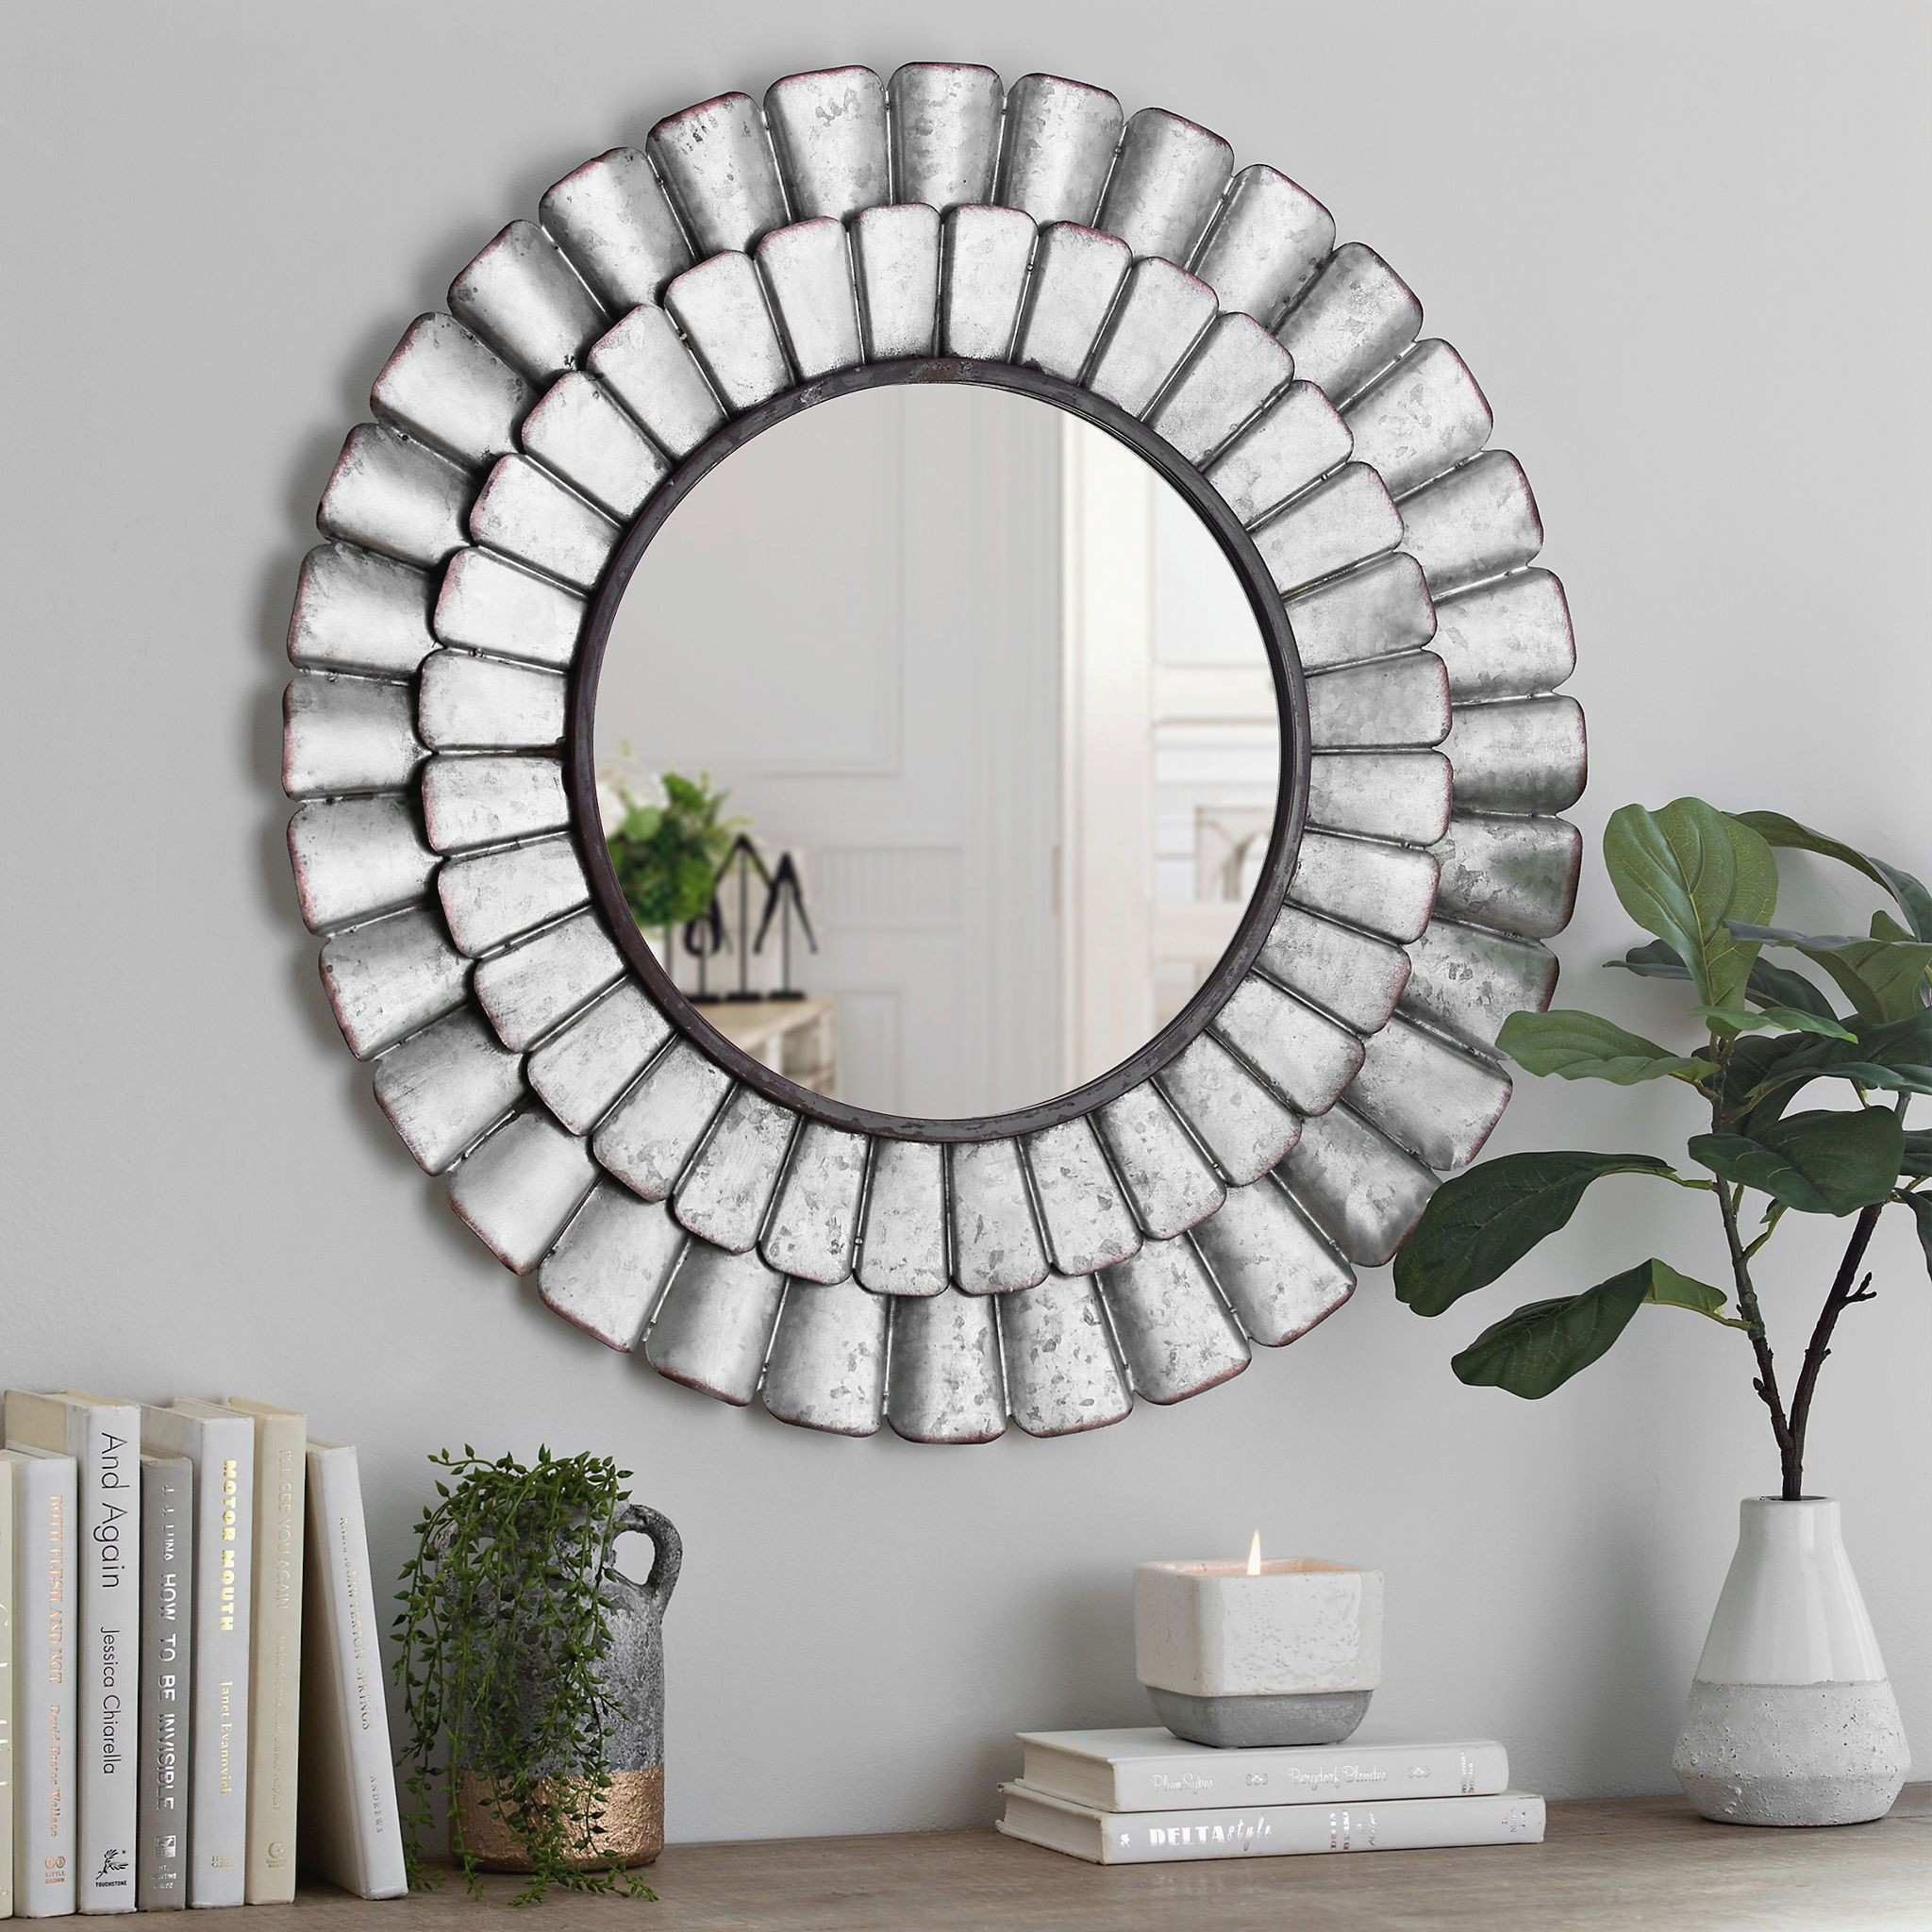 Arch Mirror Awesome Furniture Jcpenney Mirrors Awesome Galvanized Metal Petal Wall